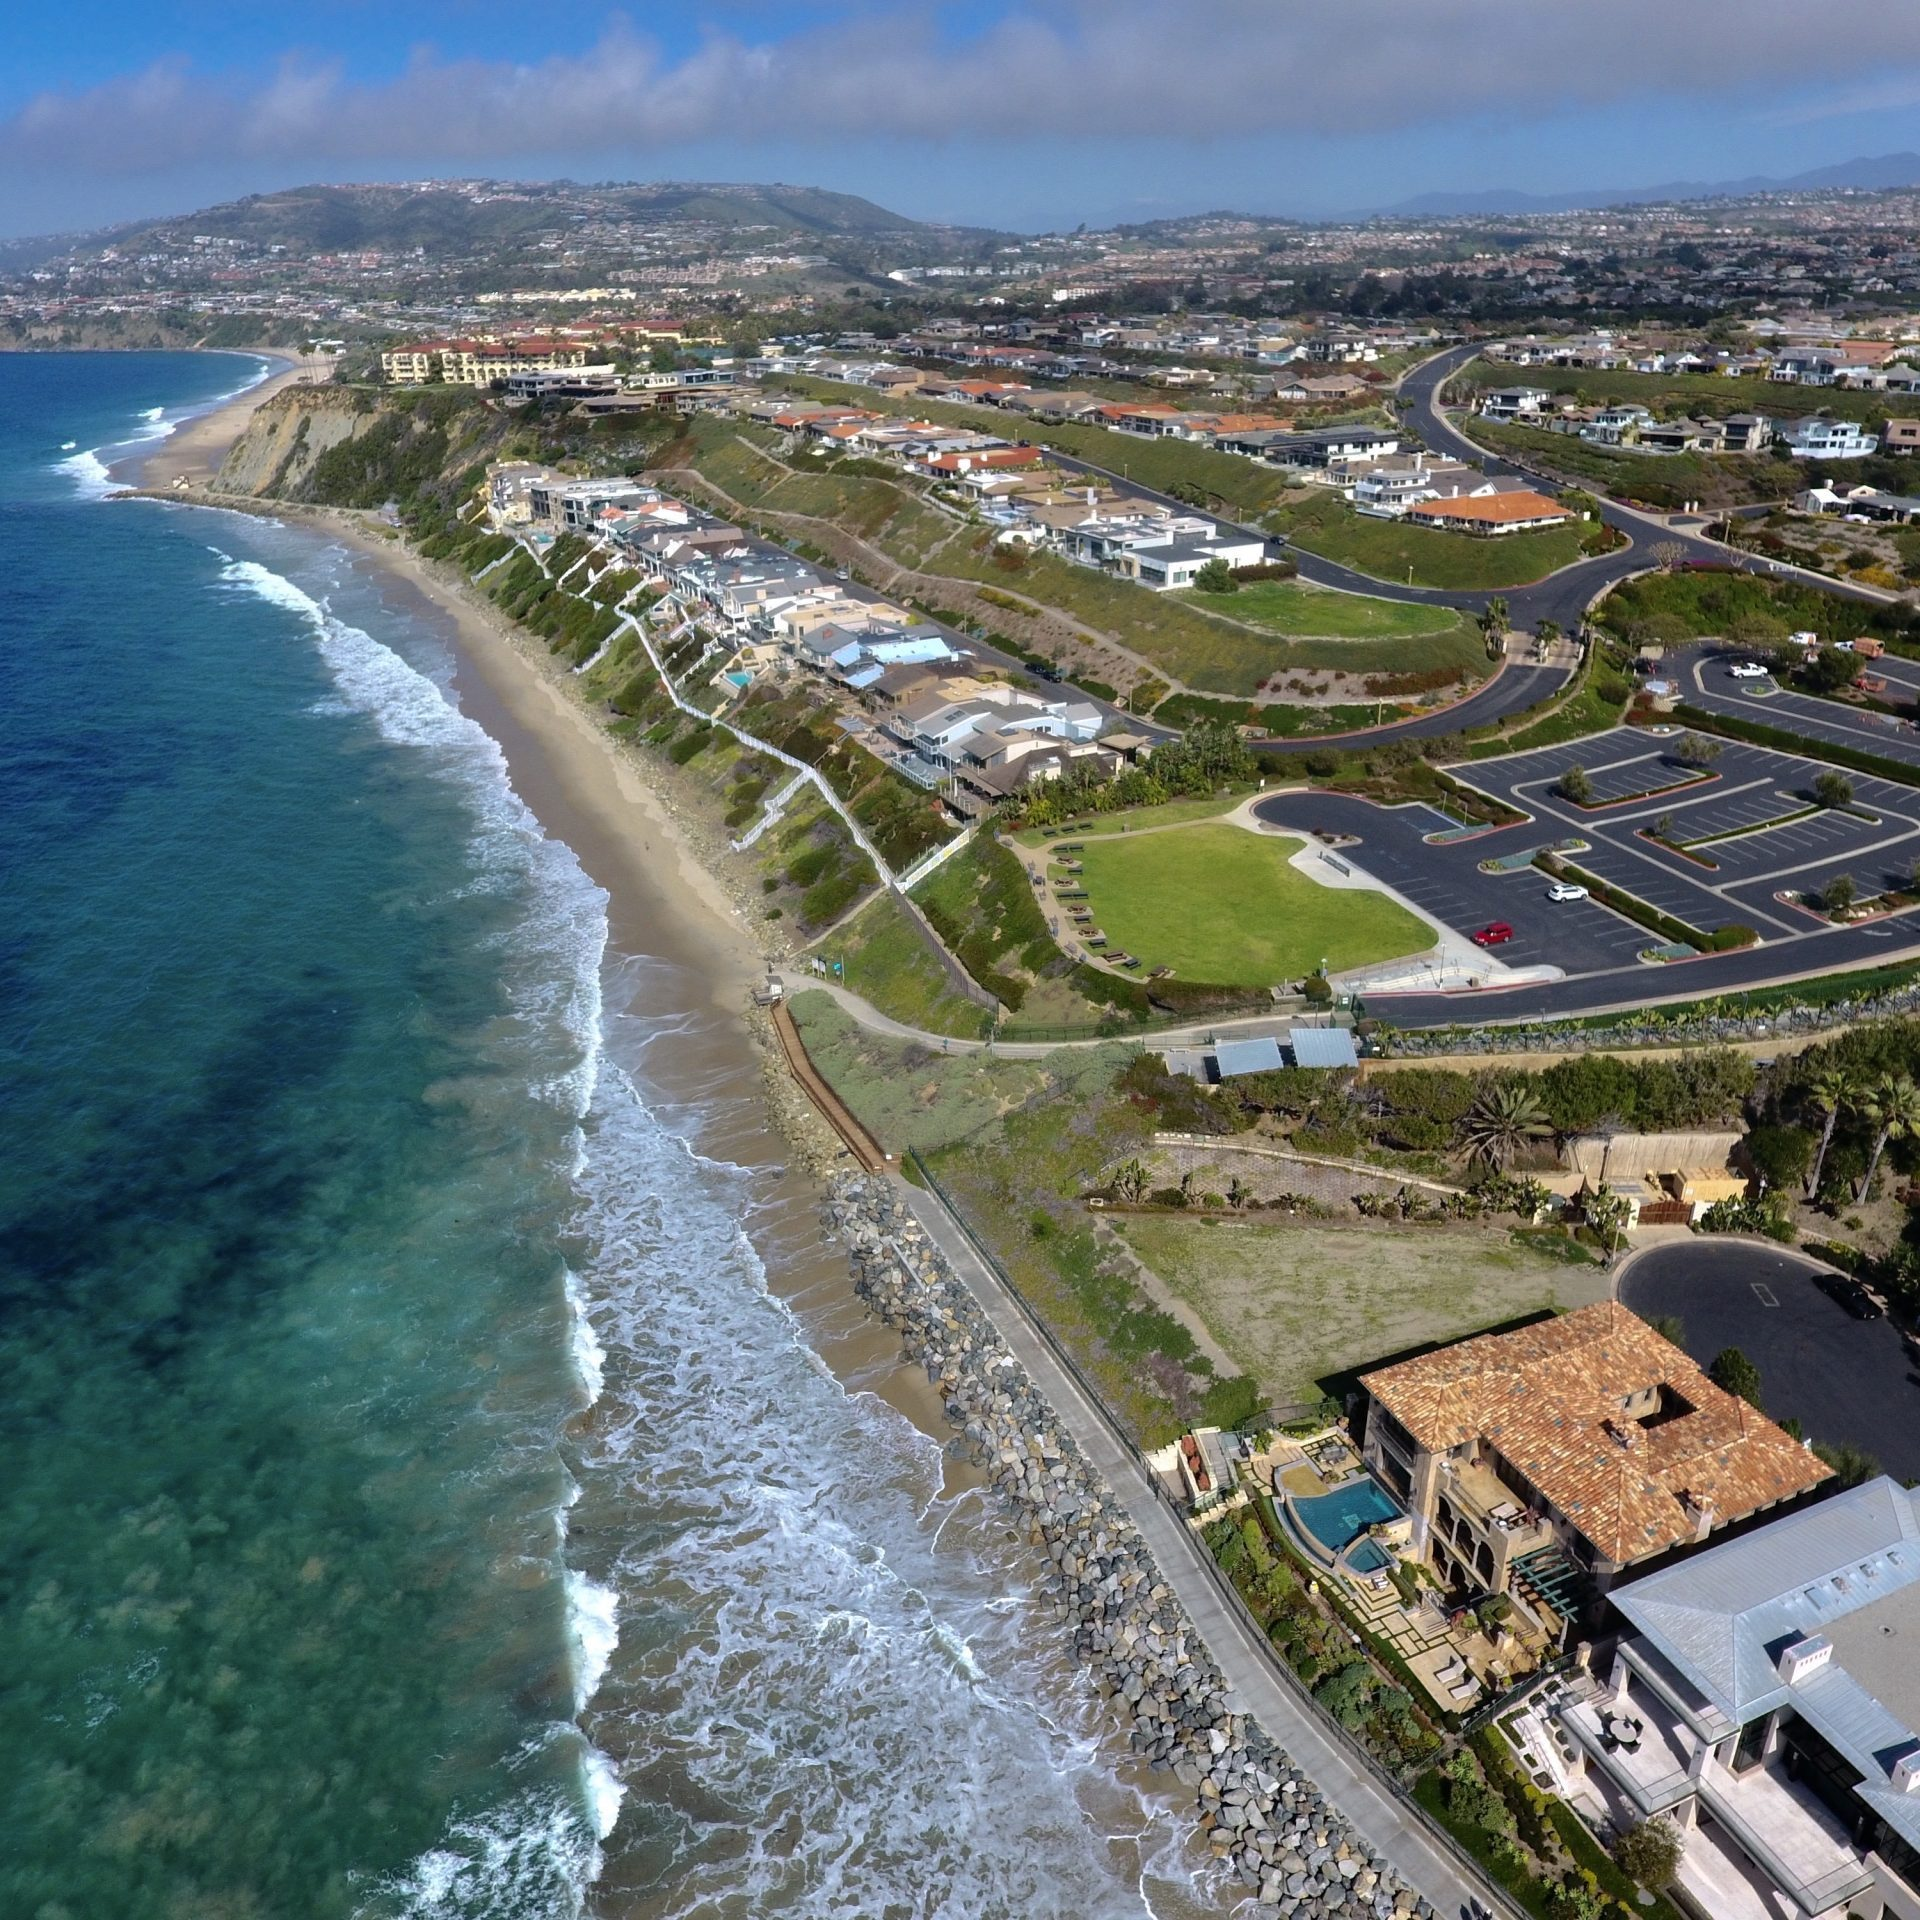 Dana Point's Strand Beach, which perennially hosts some of the state's cleanest ocean water, was one of 20 Orange County beaches to make Heal the Bay's honor role based on water quality tests over the past year.  (Photo by Jeff Gritchen, Orange County Register/SCNG)